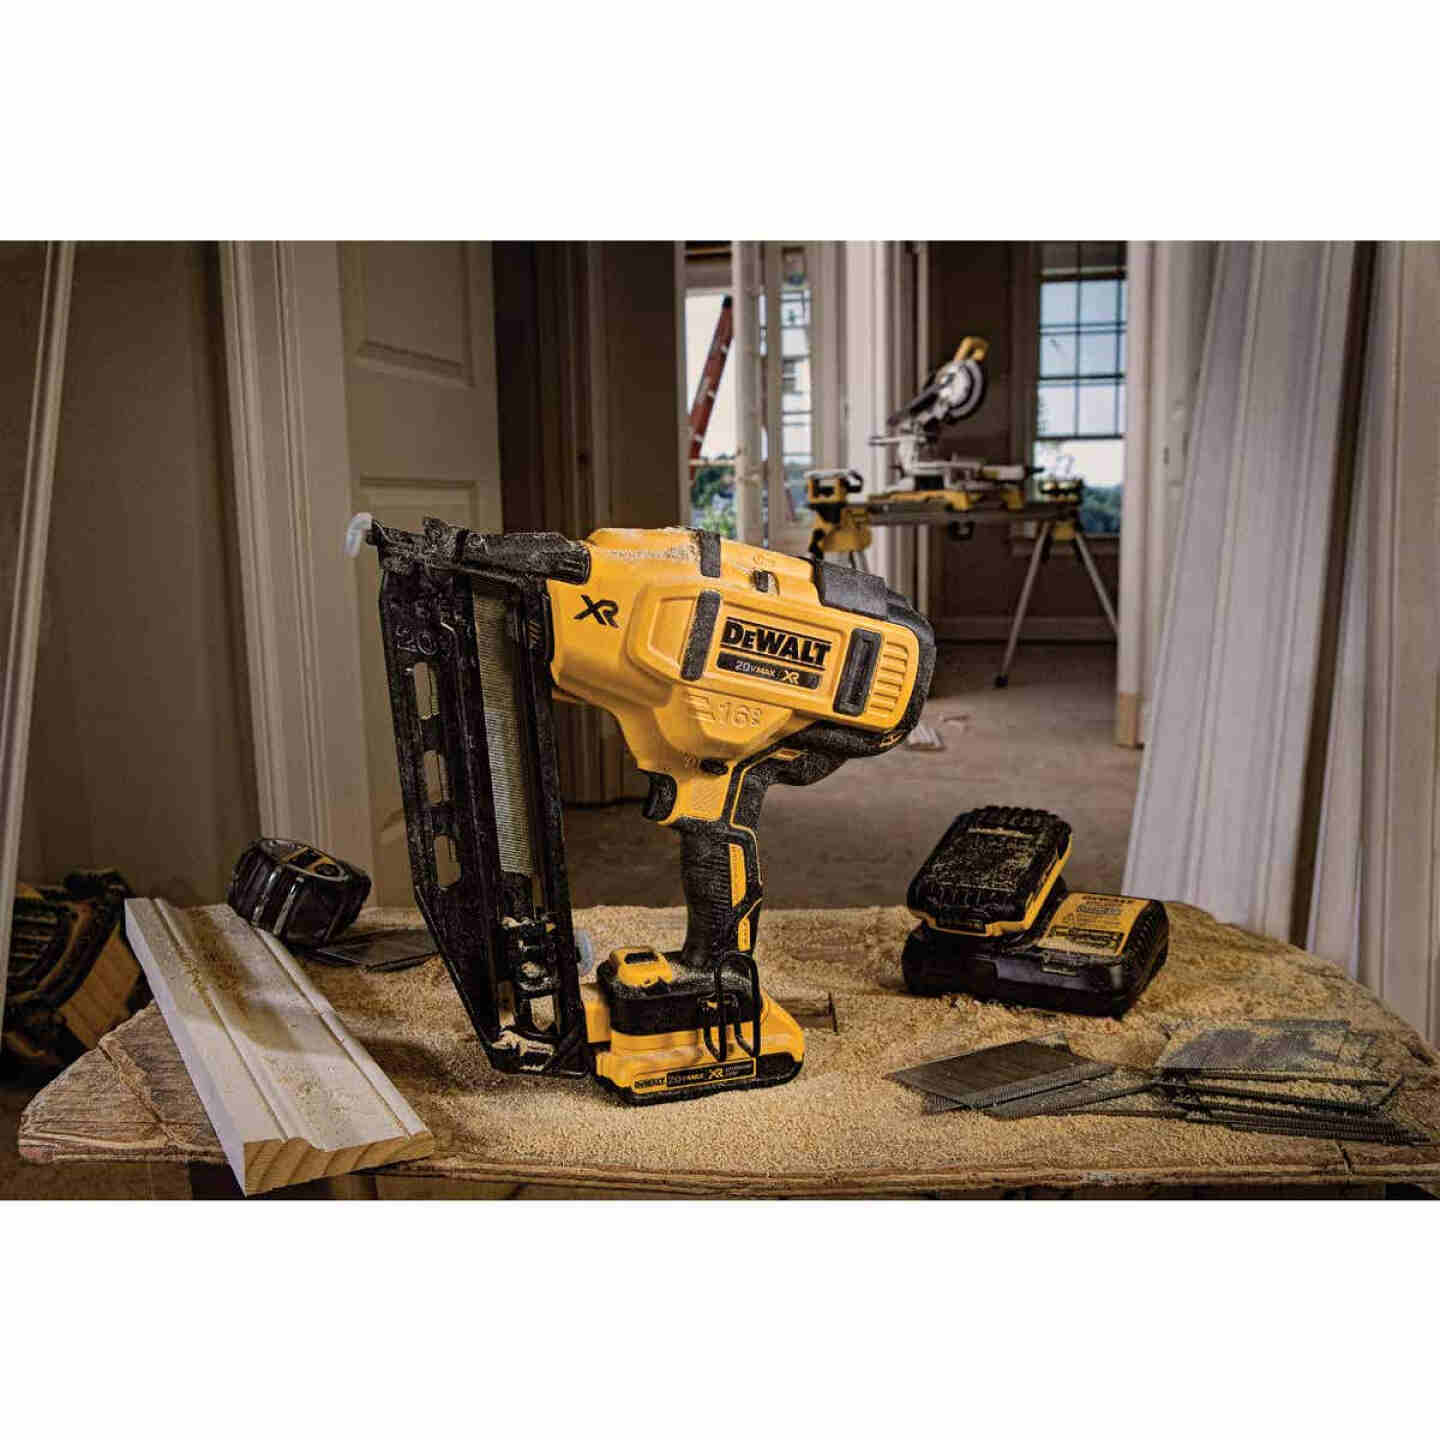 DeWalt 20 Volt MAX XR Lithium-Ion 16-Gauge 2-1/2 In. Angled Cordless Finish Nailer Kit Image 5